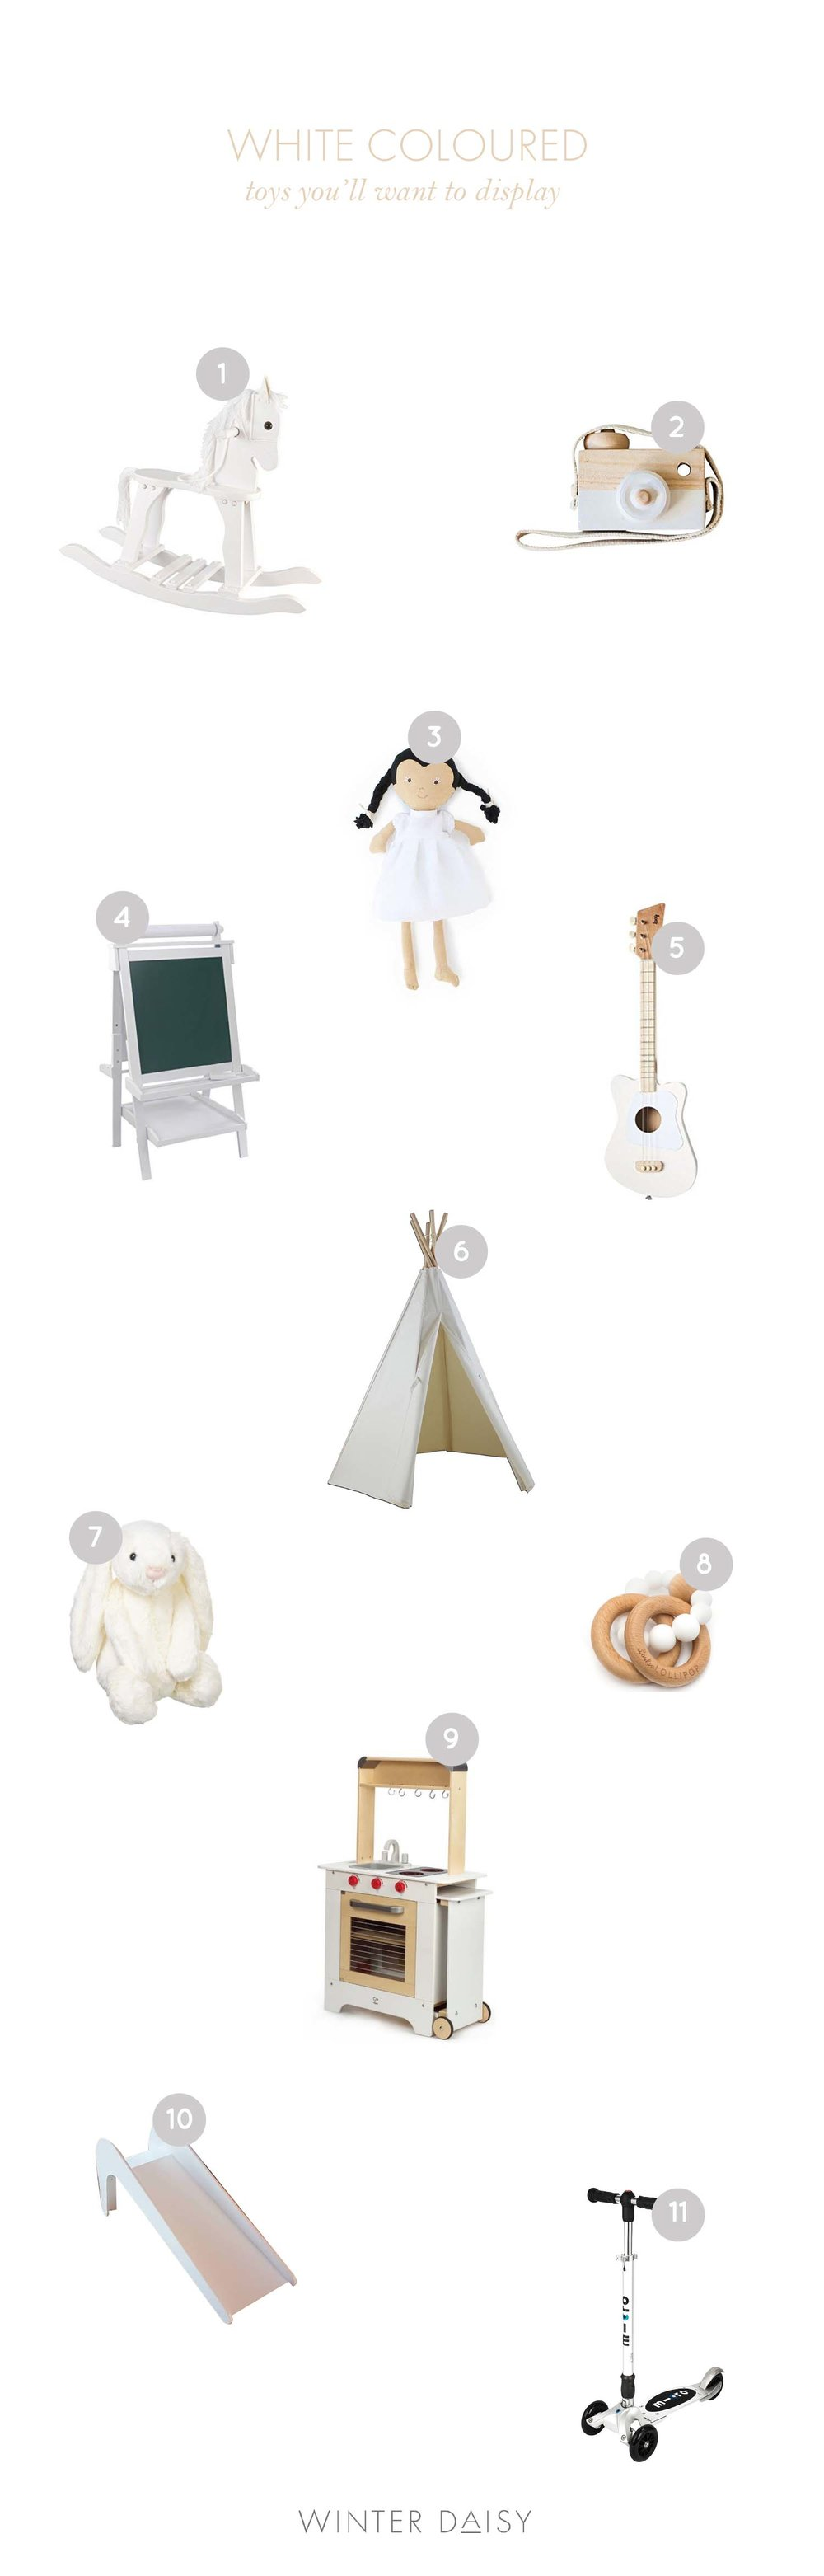 White toys for kids